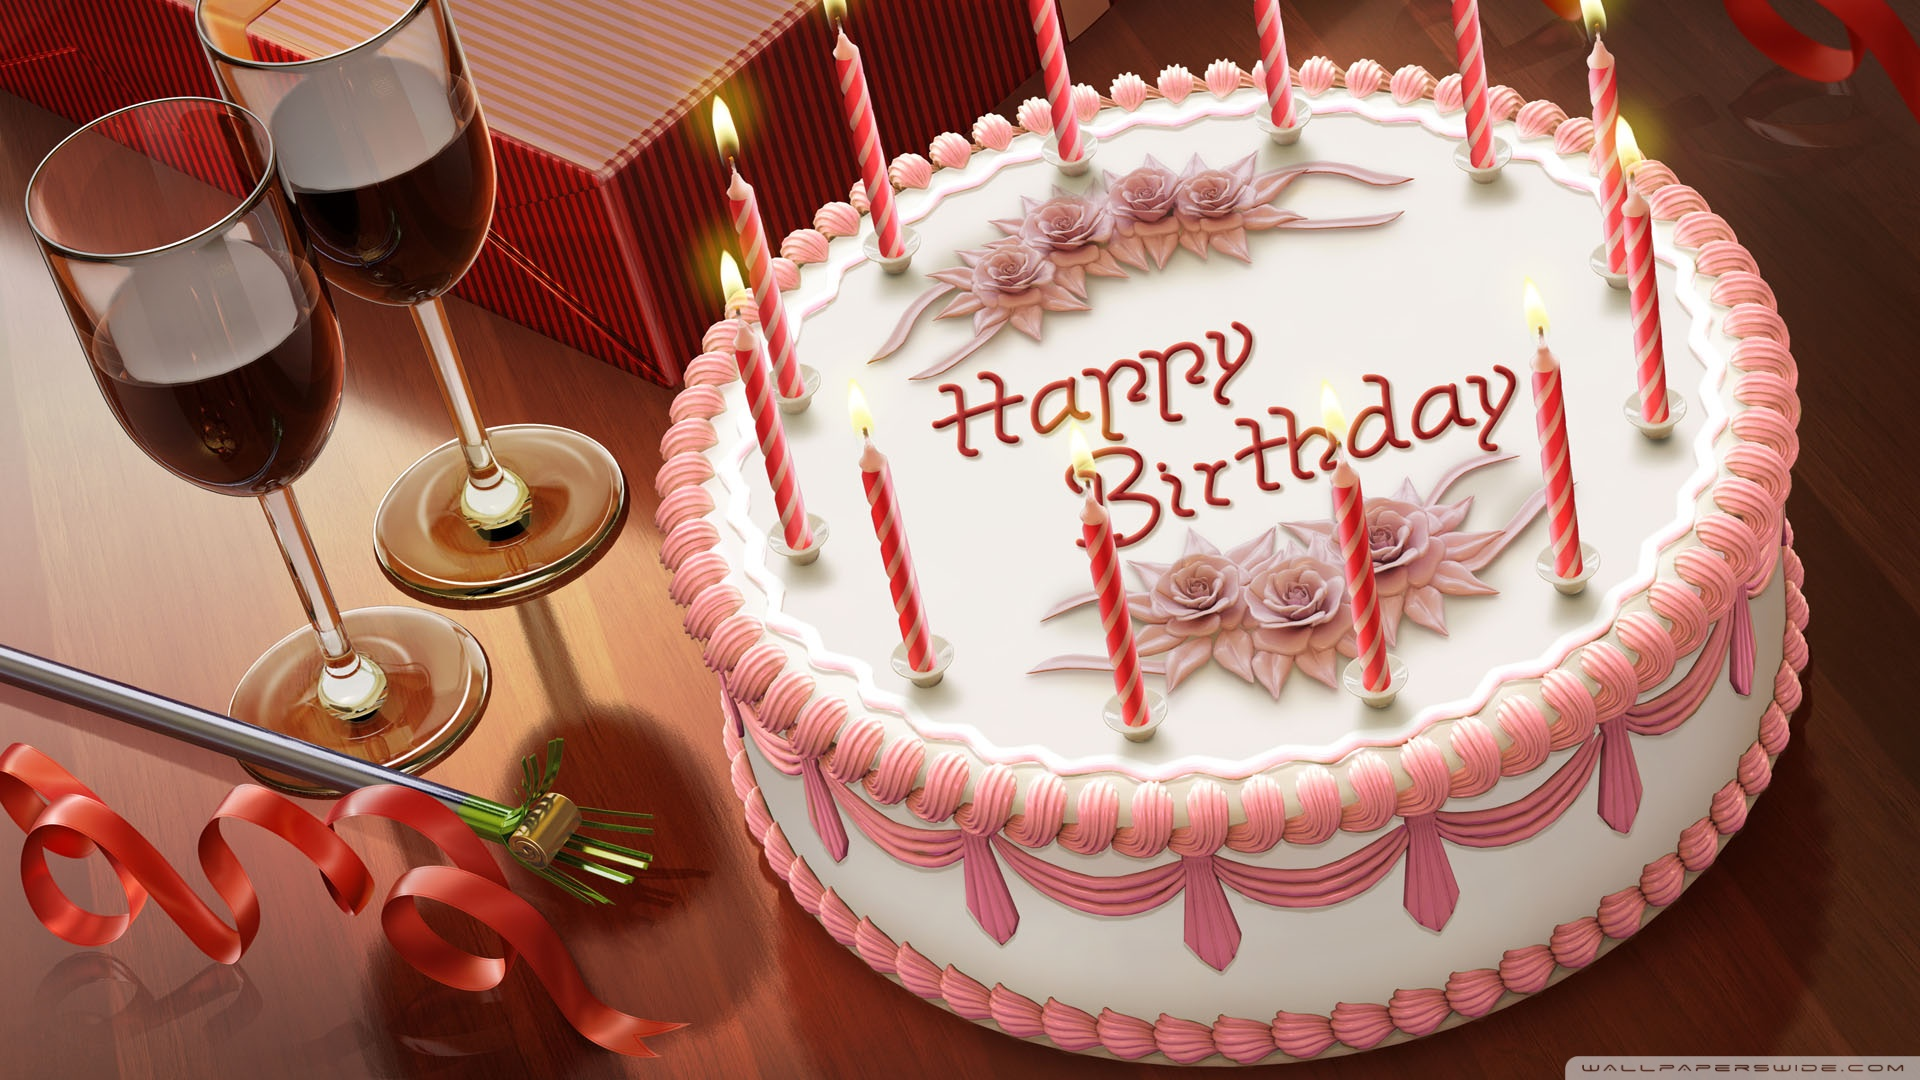 happy birthday images hd 1080p ; happy-birthday-sister-images-HD3-1